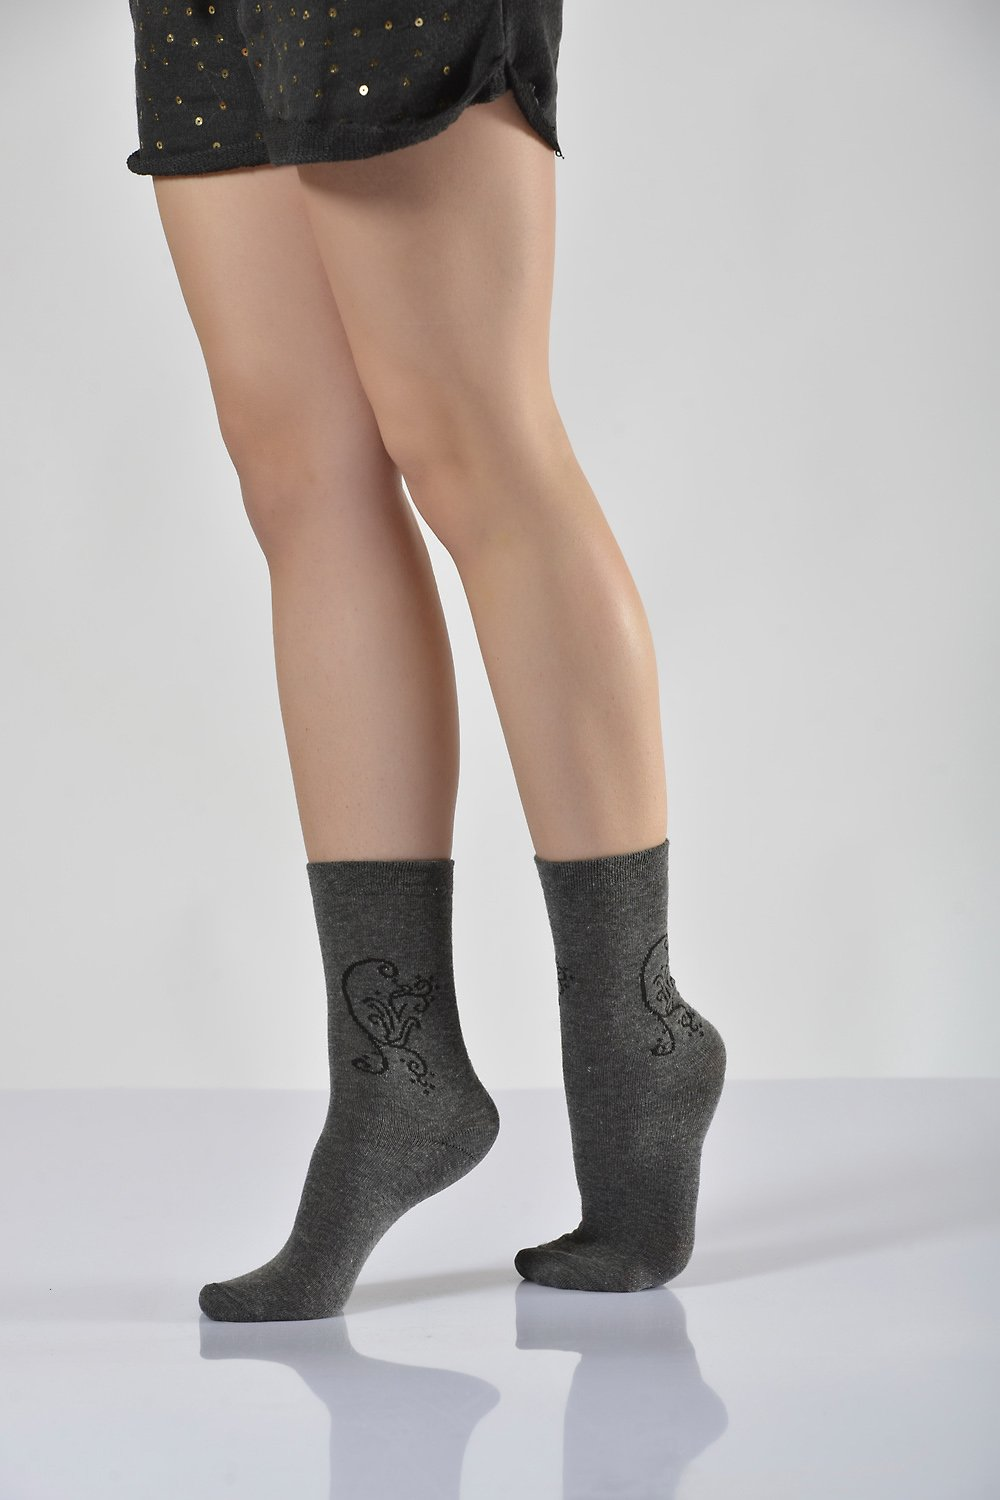 Women's Patterned Dark Grey Socket Socks- 3 Pairs